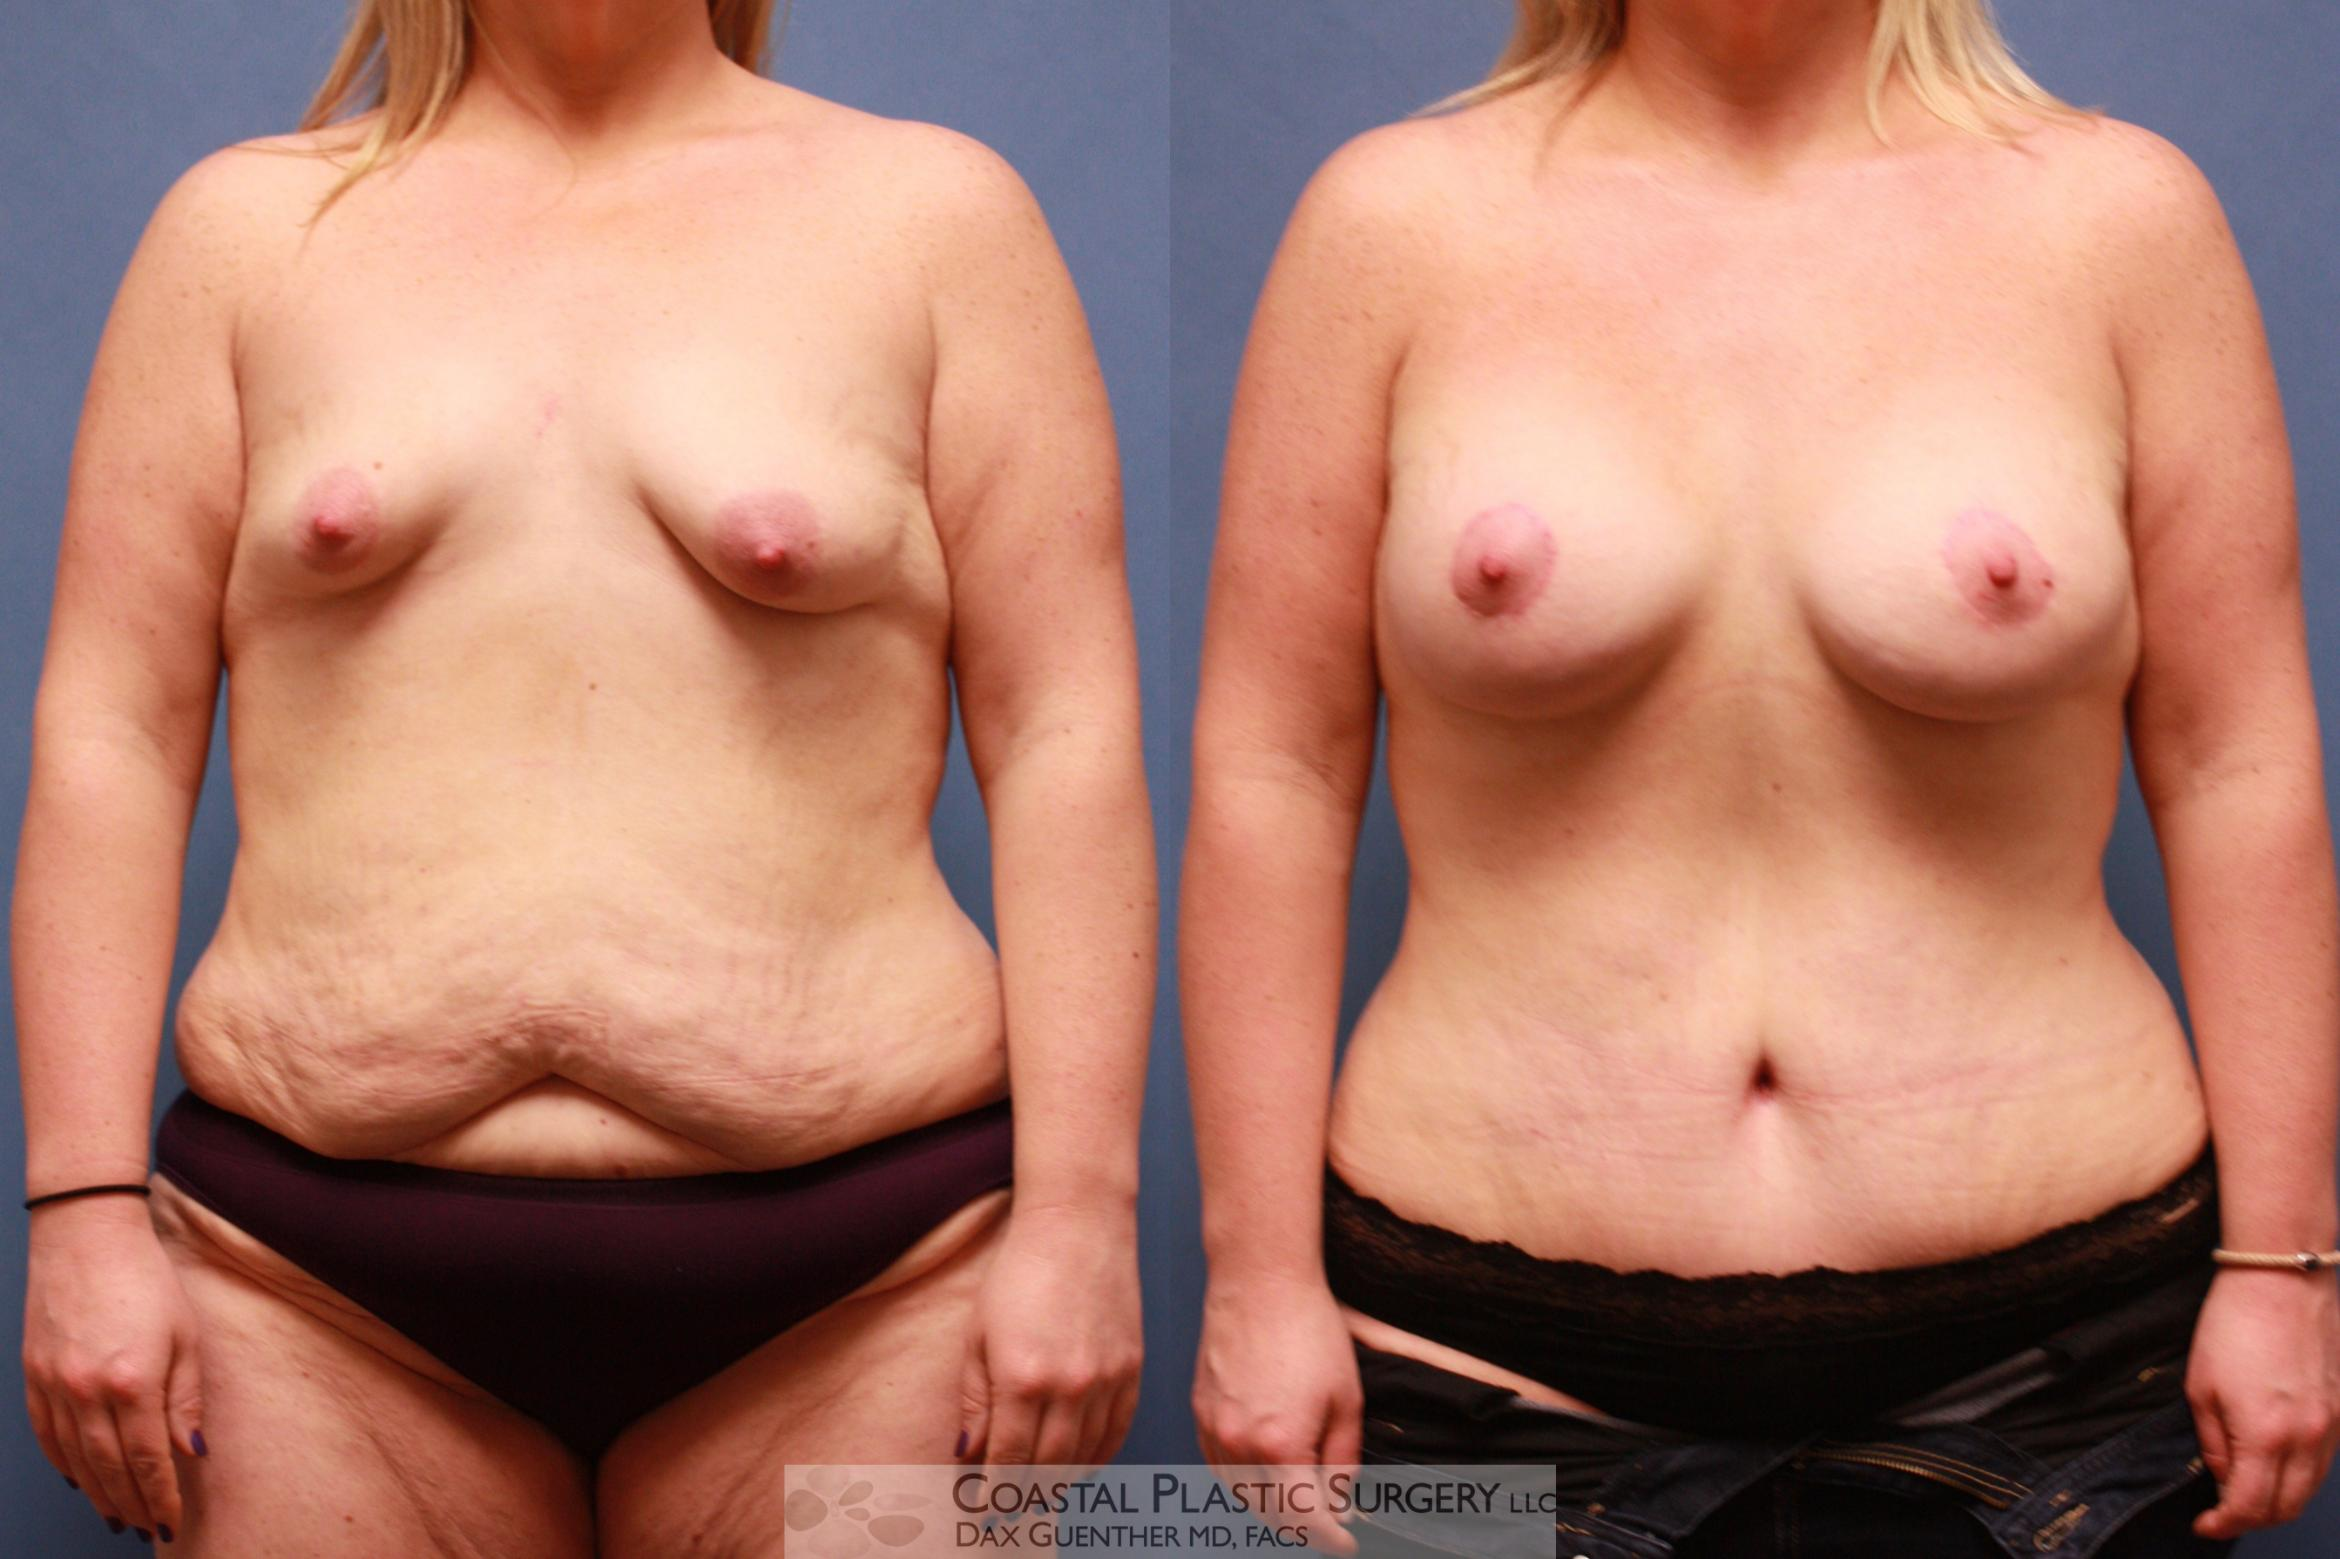 Mommy Makeover Before & After Photo | Hingham, Boston & Nantucket, MA | Dax Guenther, MD: Coastal Plastic Surgery